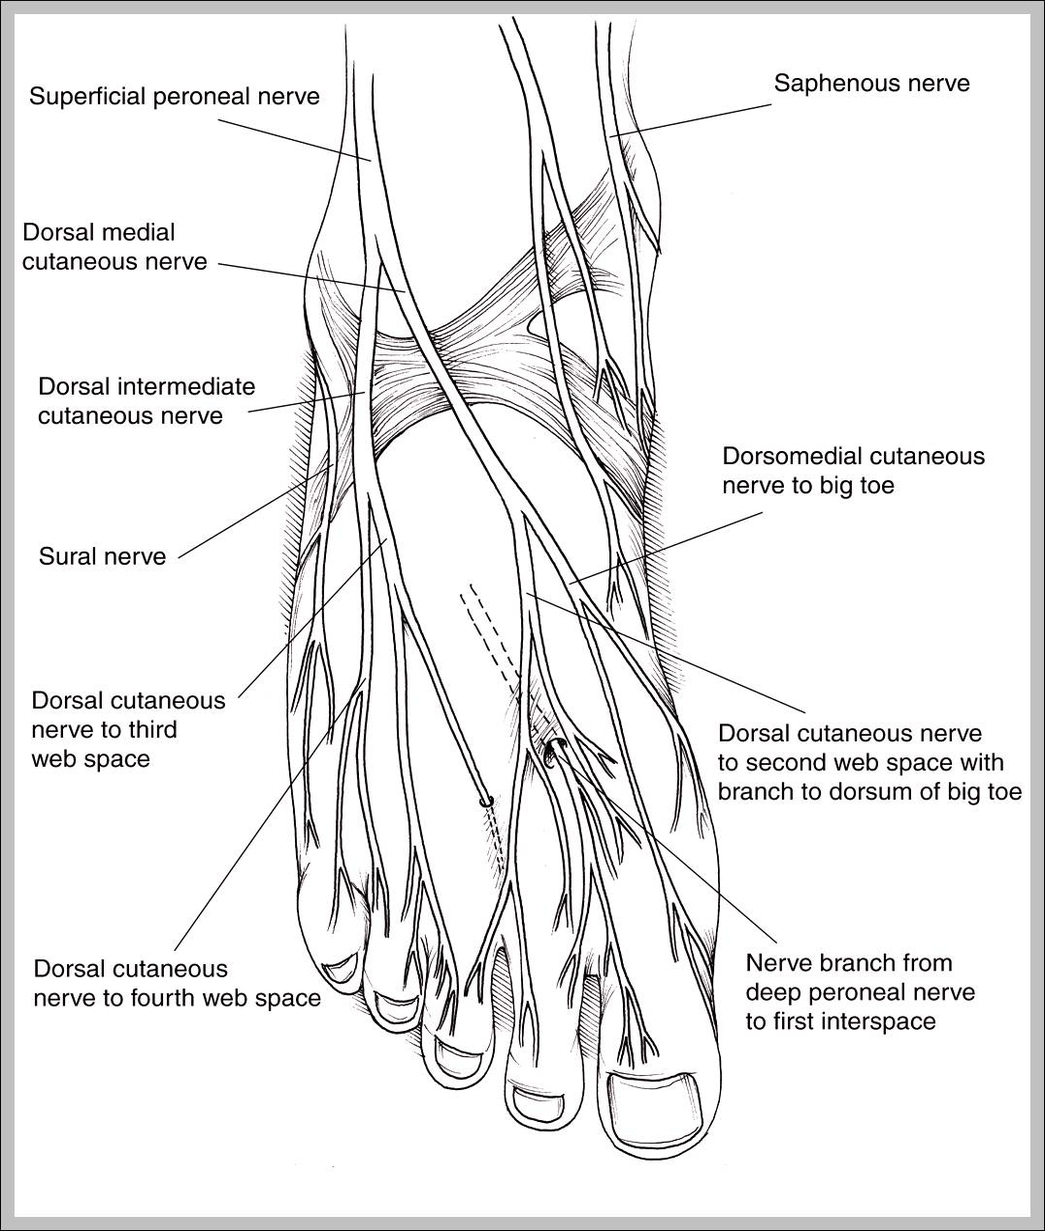 Human nerves graph diagram page 2 nerves of the feet diagram chart diagrams and charts with labels this diagram depicts nerves of the feet ccuart Gallery